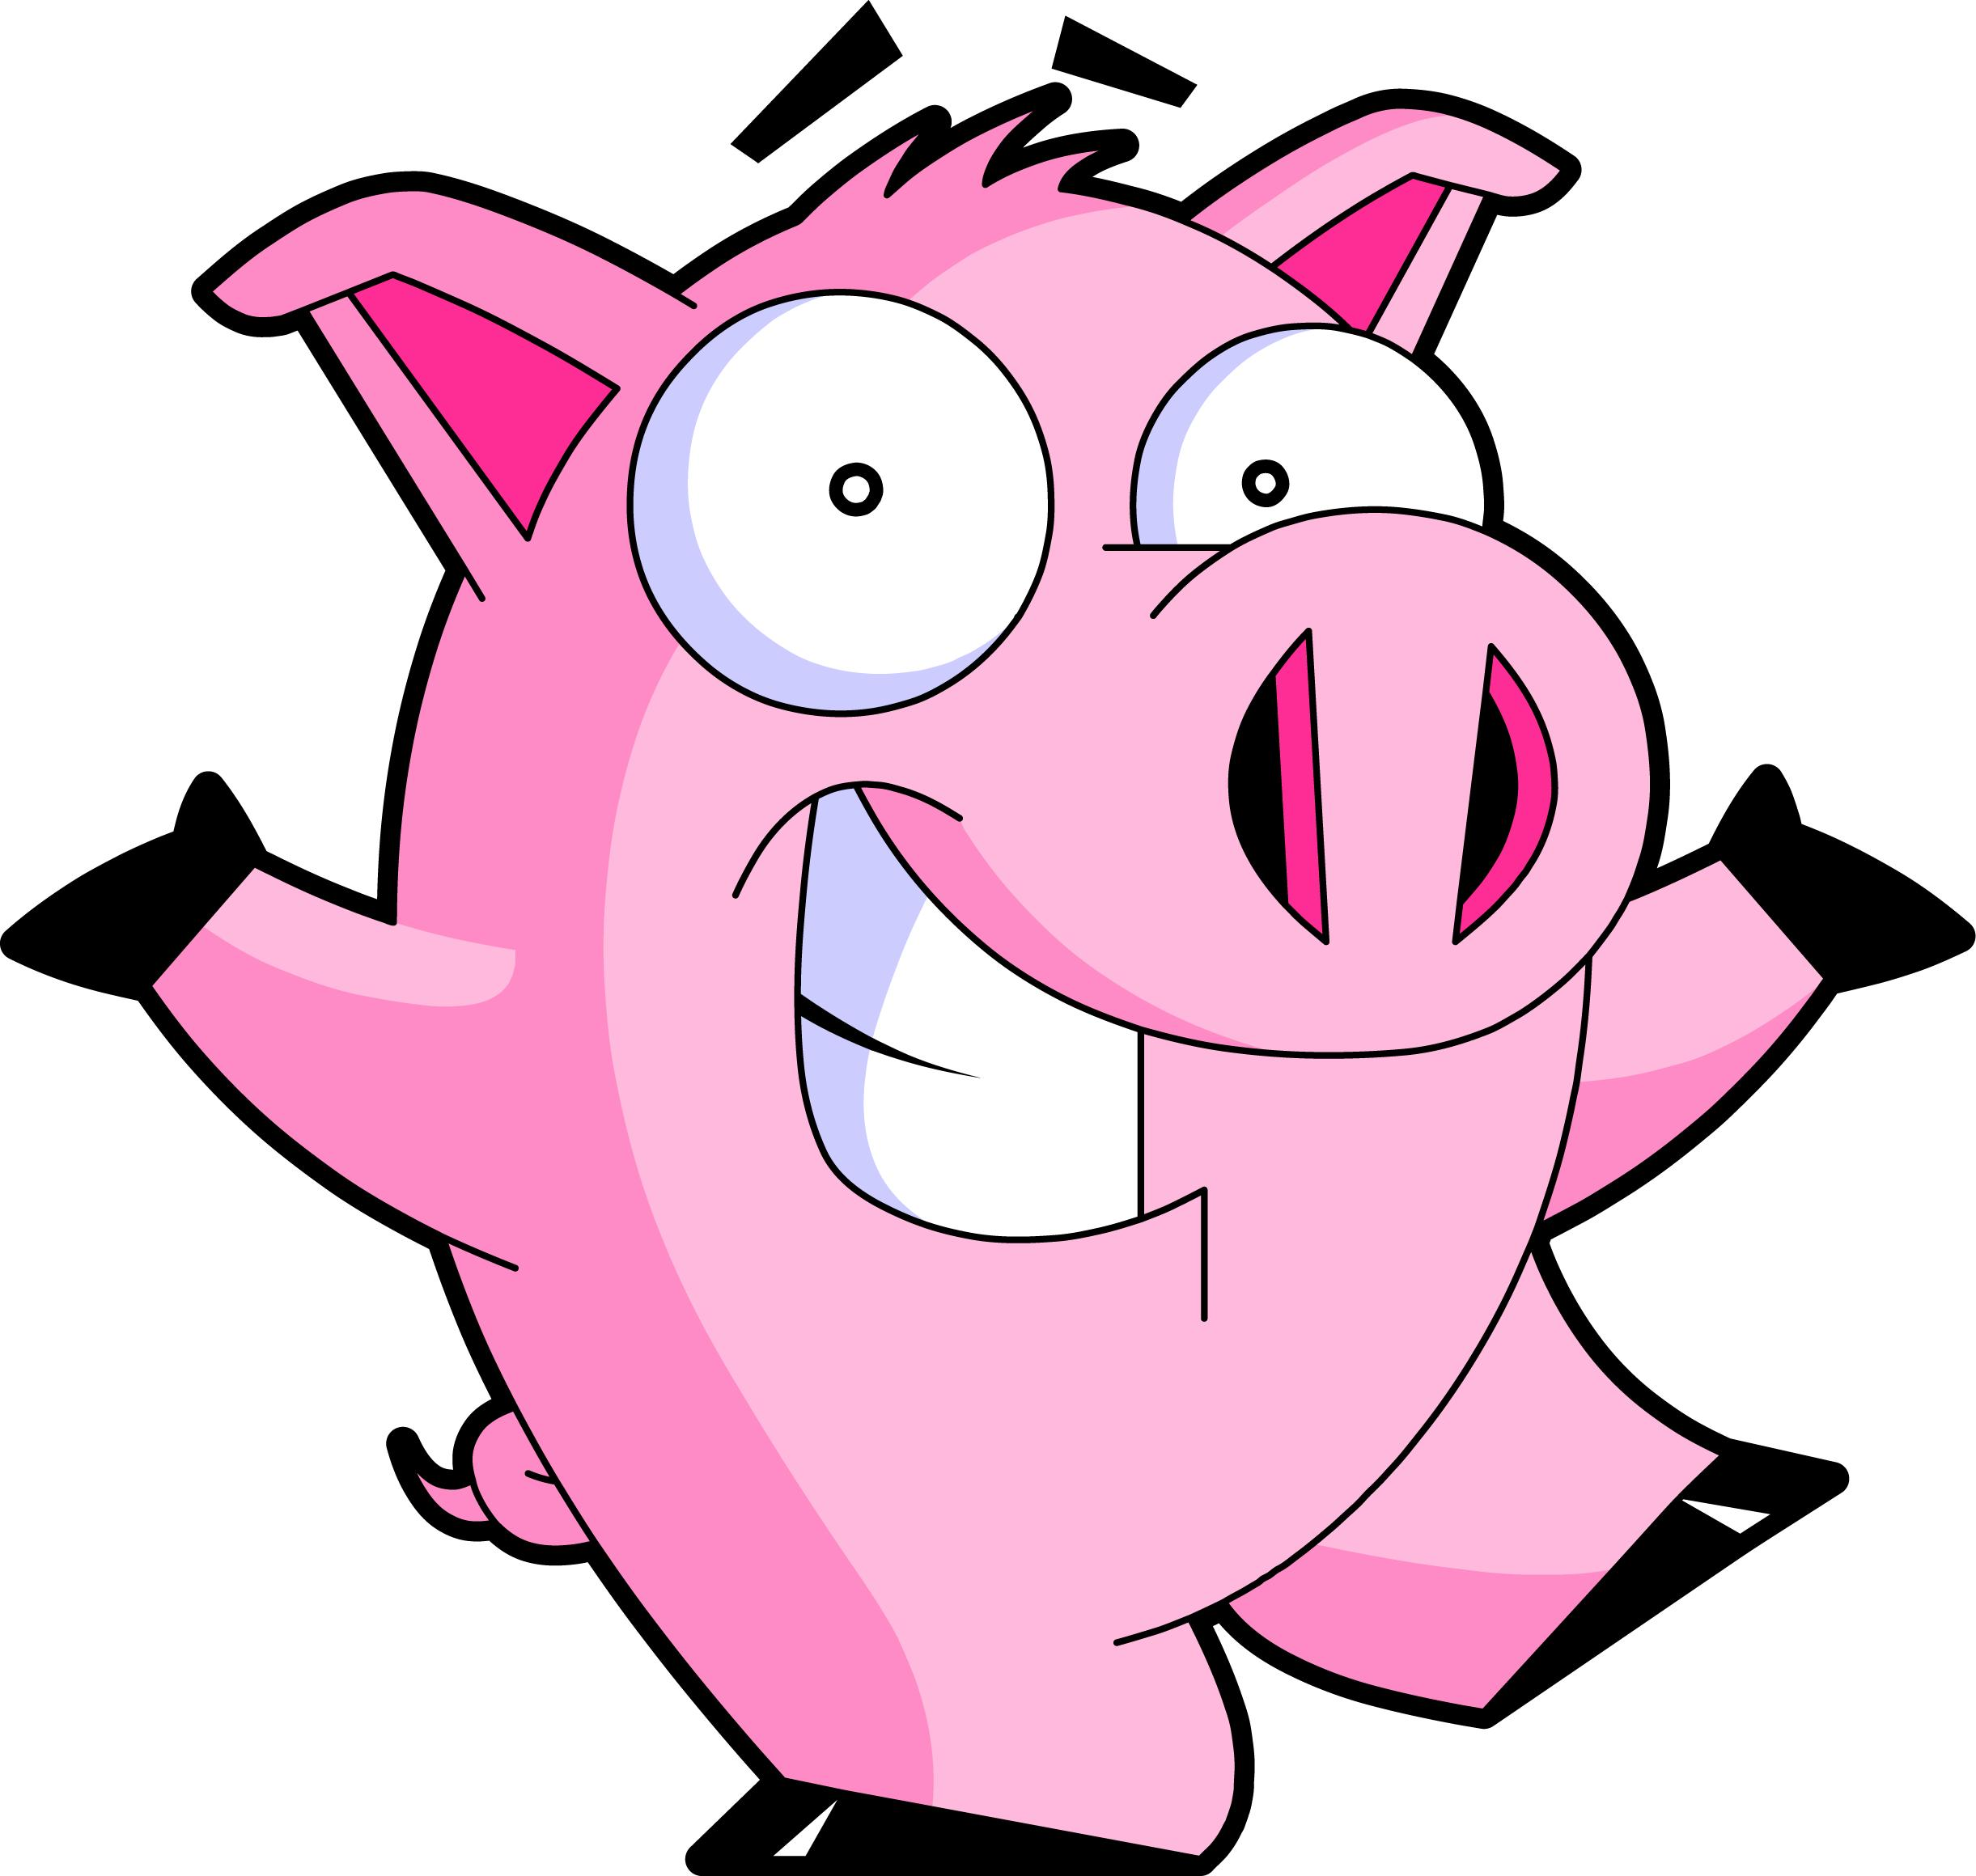 Clipart of pigs pictures. Pig clip art cartoon picture download